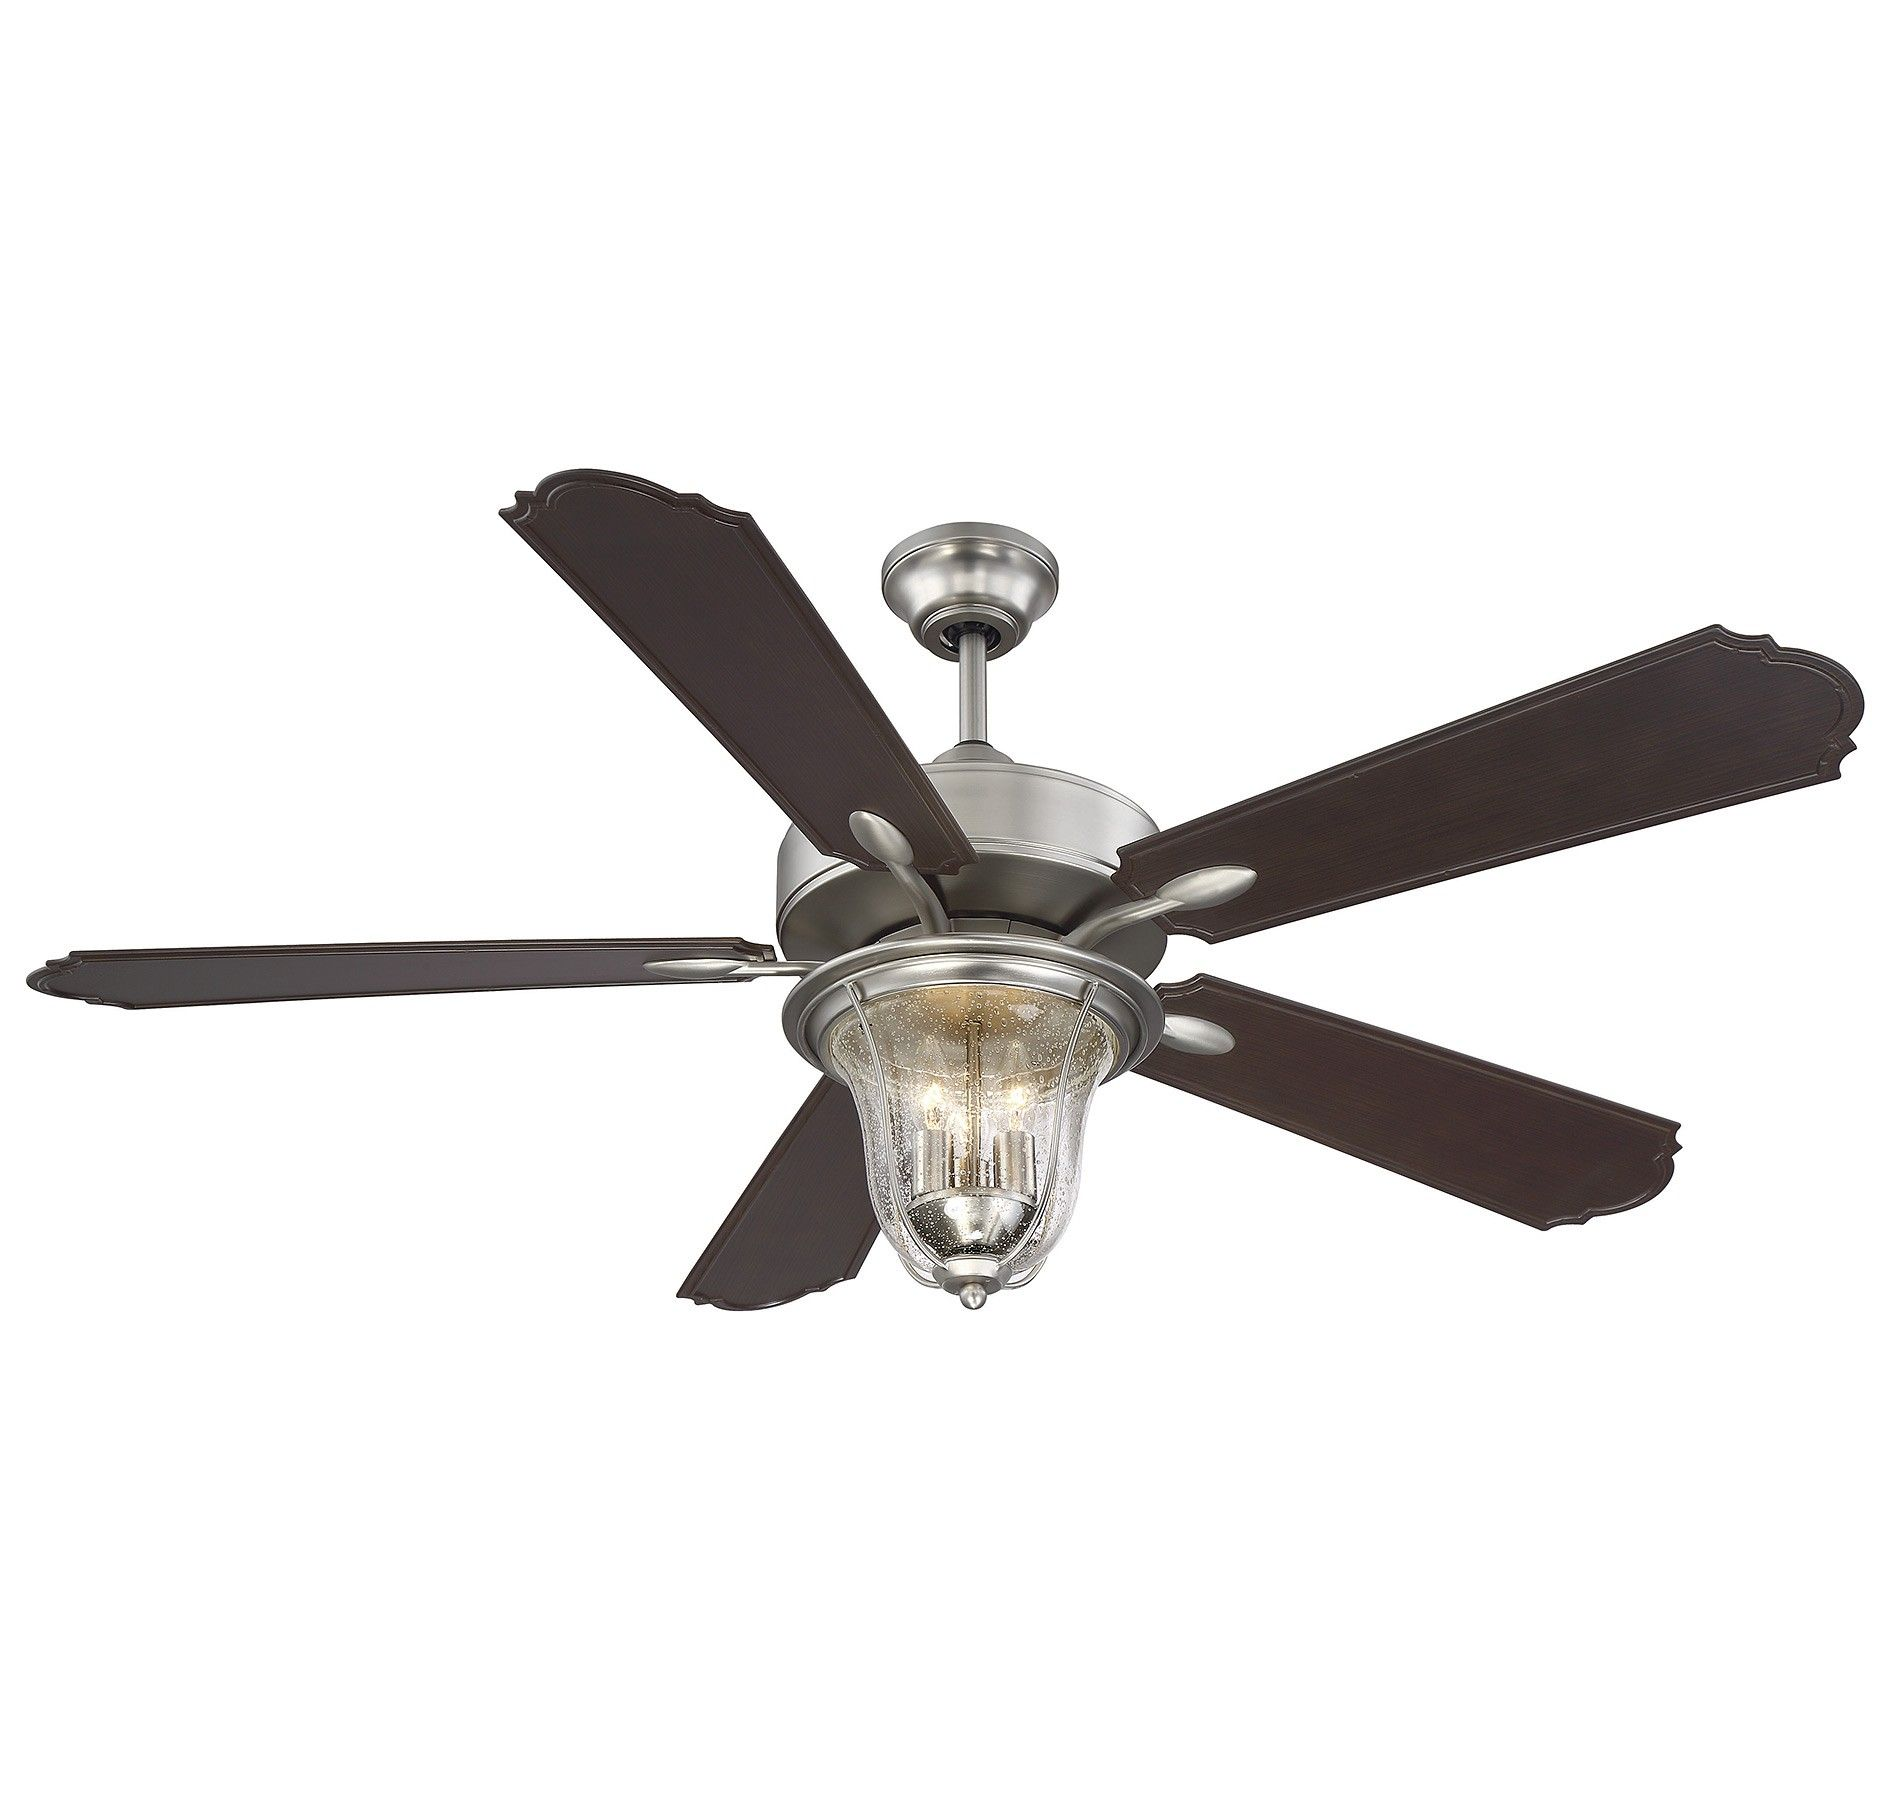 Great Room The Impeccably Crafted Trudy Collection From Savoy House Now Includes Ceiling Fans A Shapely Ceiling Fan Shop Ceiling Fans Ceiling Fan With Remote